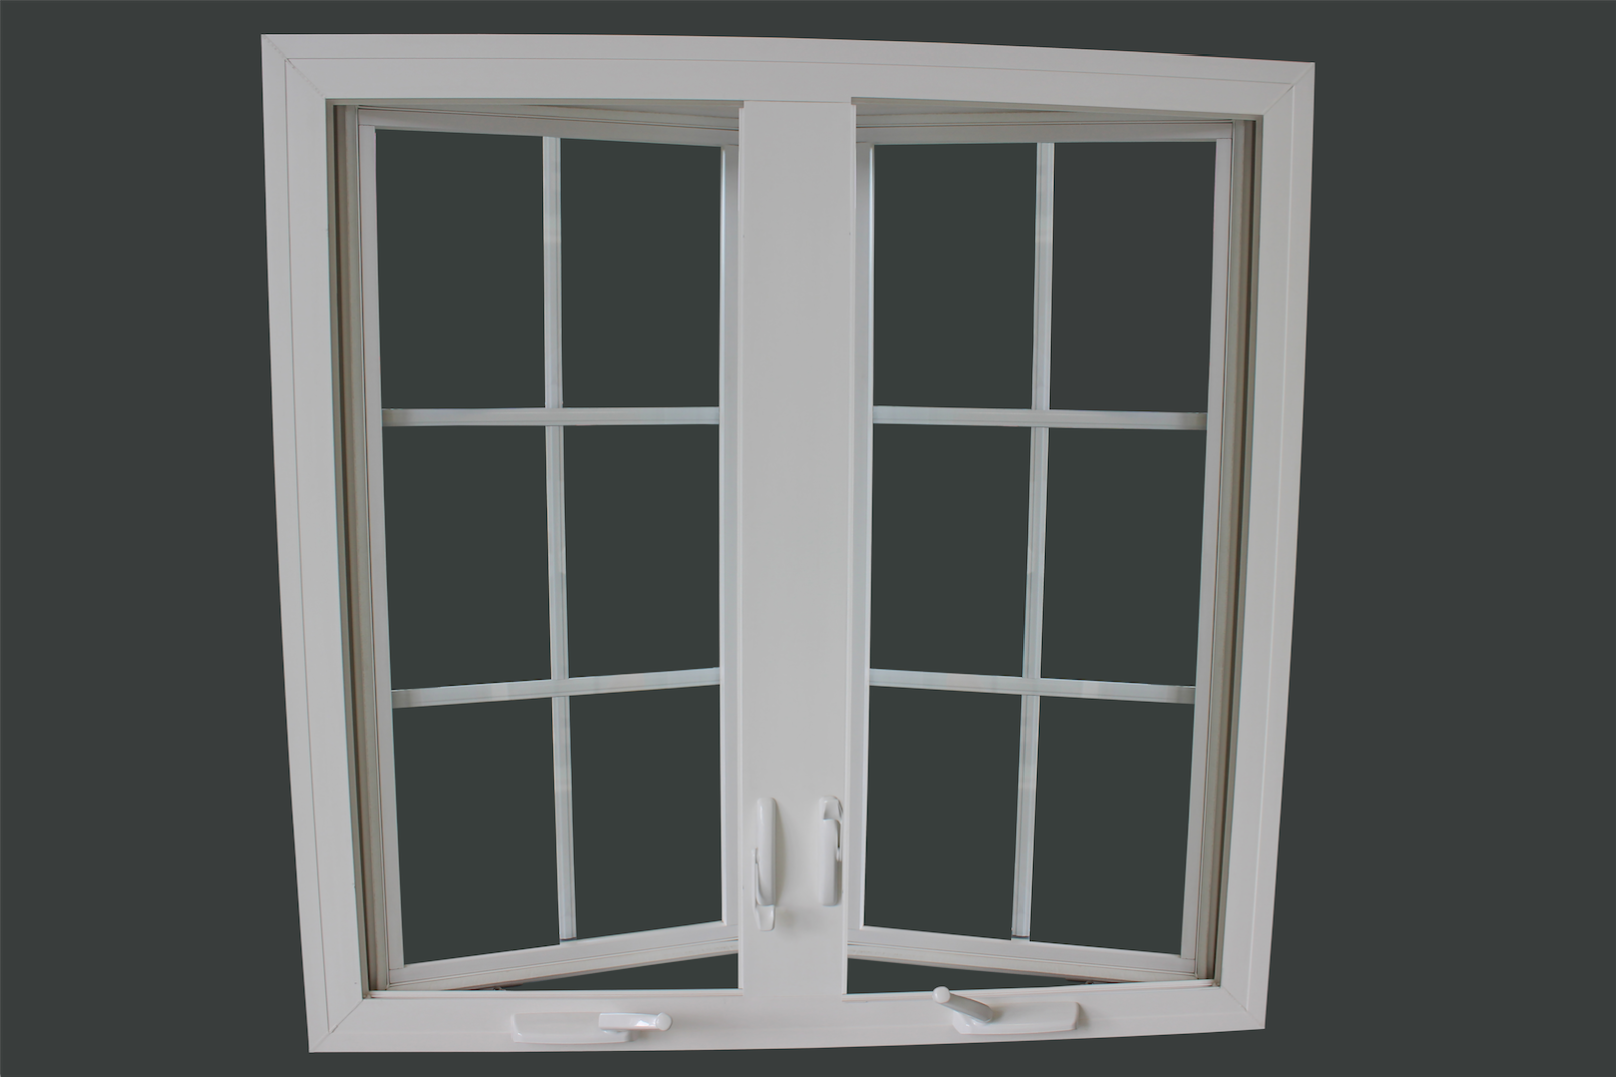 Replacement casement windows specialty wholesale supply for Best vinyl replacement windows